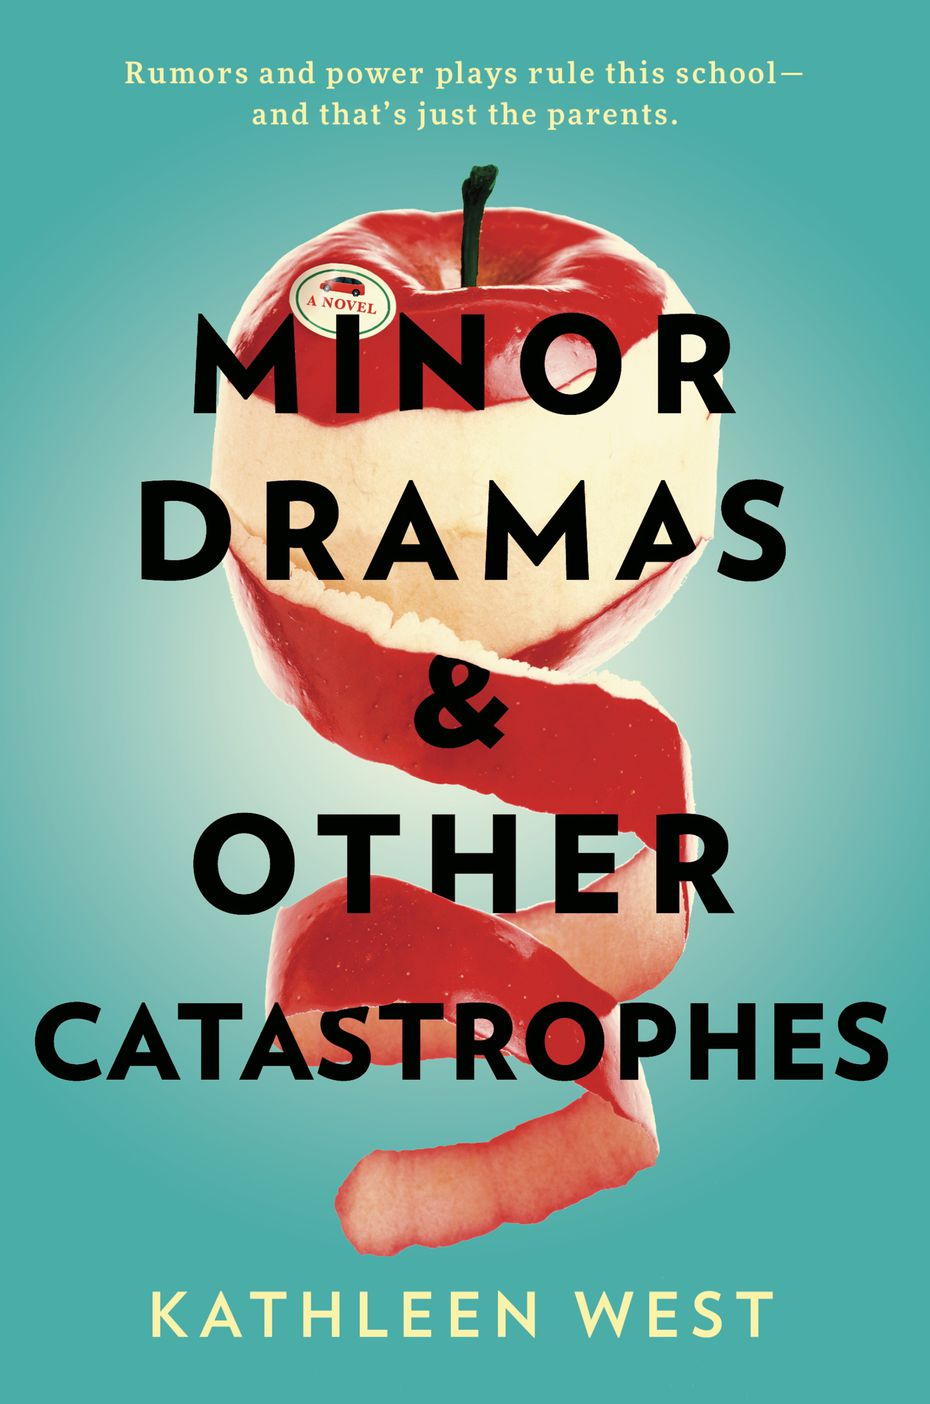 """The friction in Kathleen West's """"Minor Dramas & Other Catastrophes"""" is between the adults in a fictional Minneapolis suburb."""